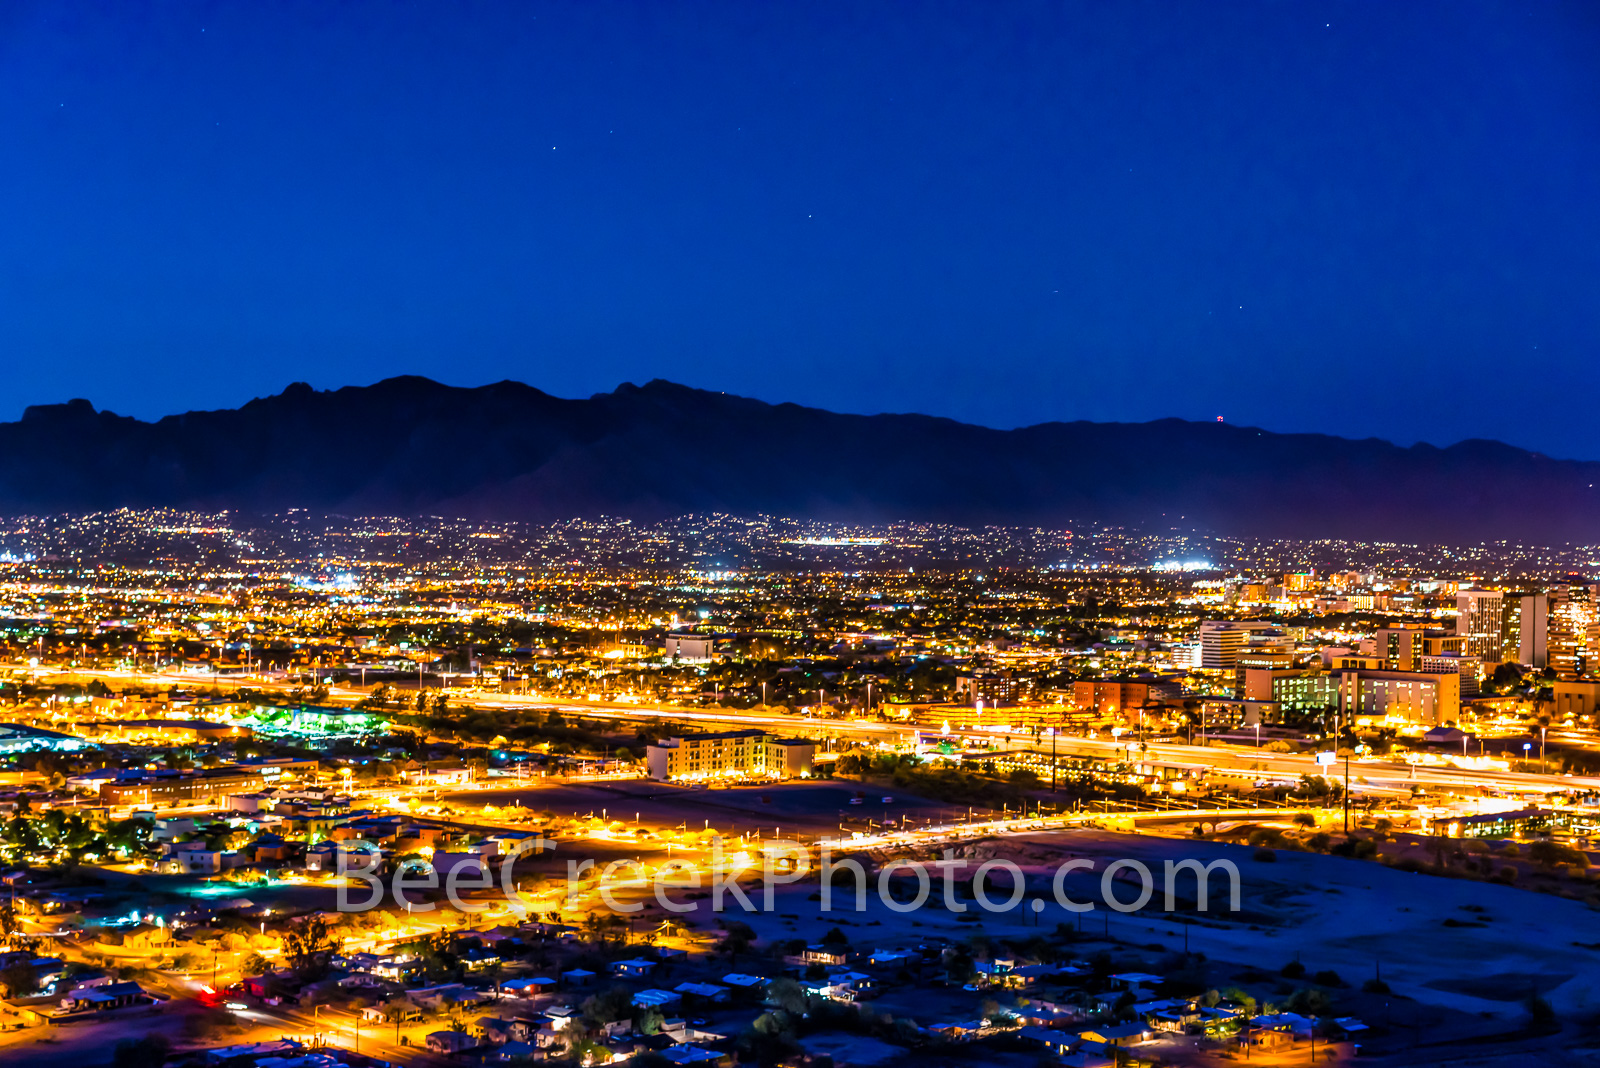 Tucson, night, View of Tucson, cityscape, downtown, city,  images of Tucson, photos of Tucson, pictures of Tucson, photographs of Tucson, Tucson mountains, Tucson skyline, Tucson cityscape, Tucson, Ar, photo